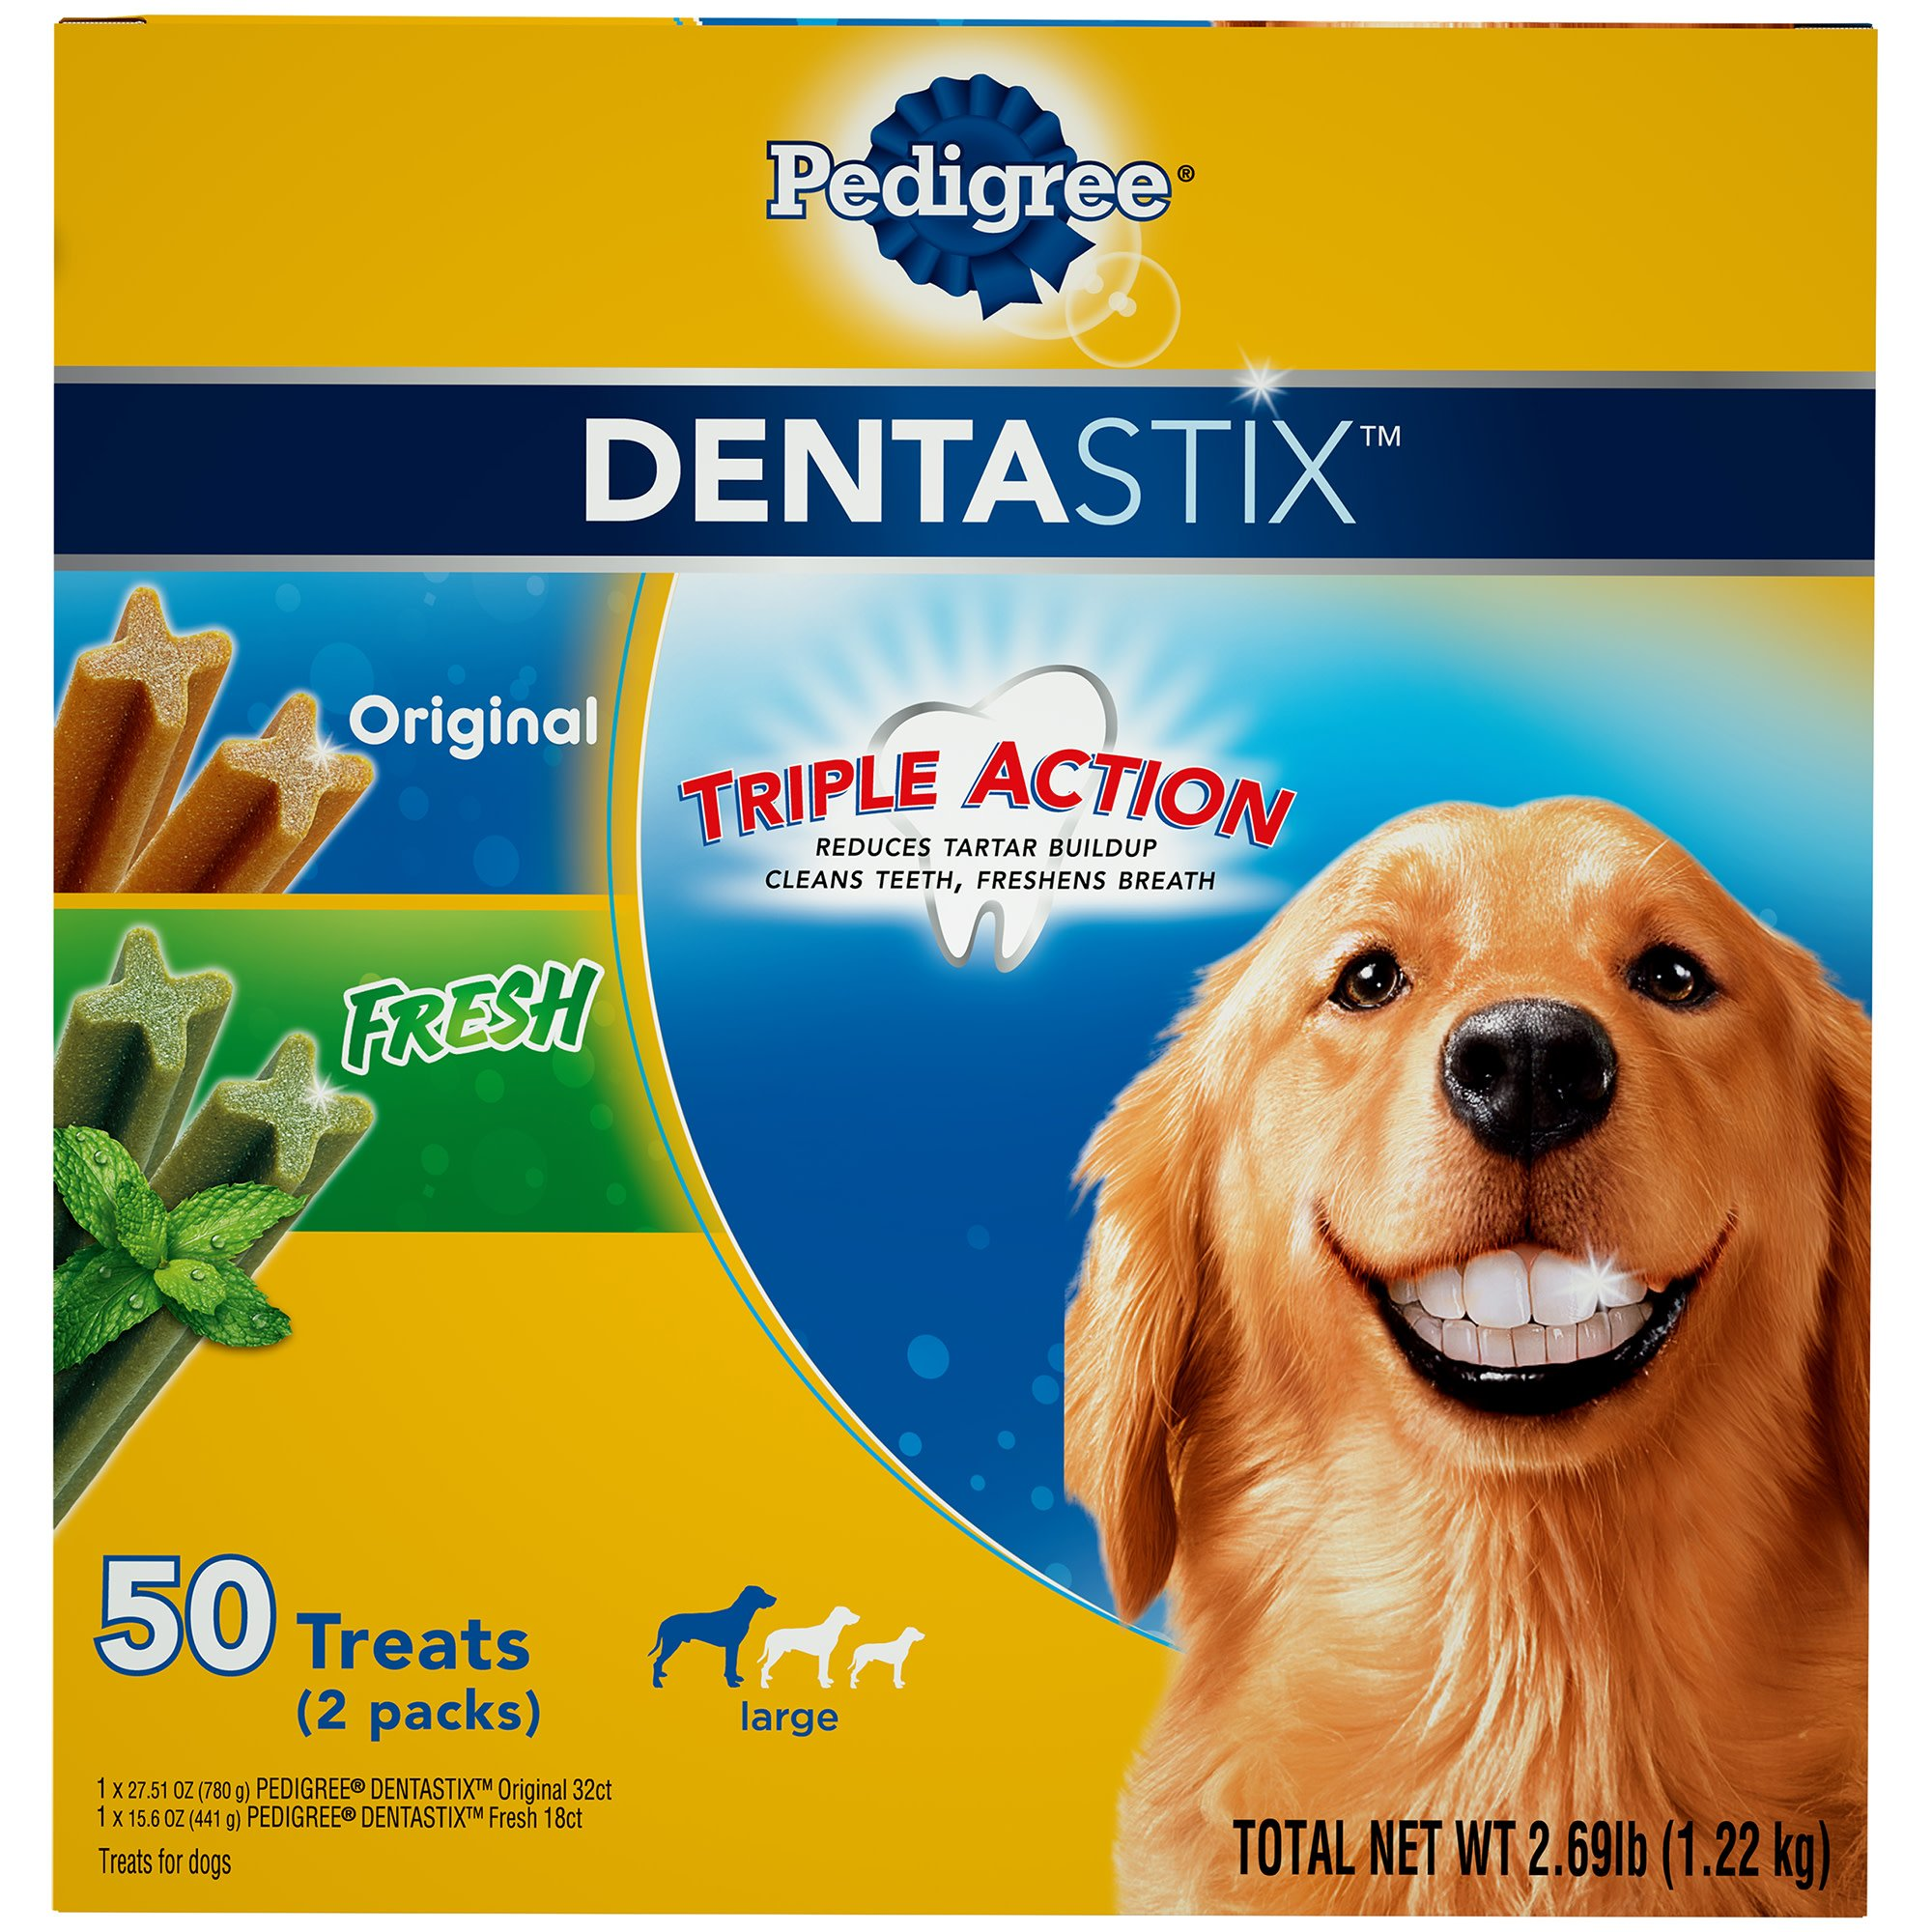 Pedigree Dentastix Original And Fresh Variety Pack Large Treats For Dogs, 2.69 lbs.,